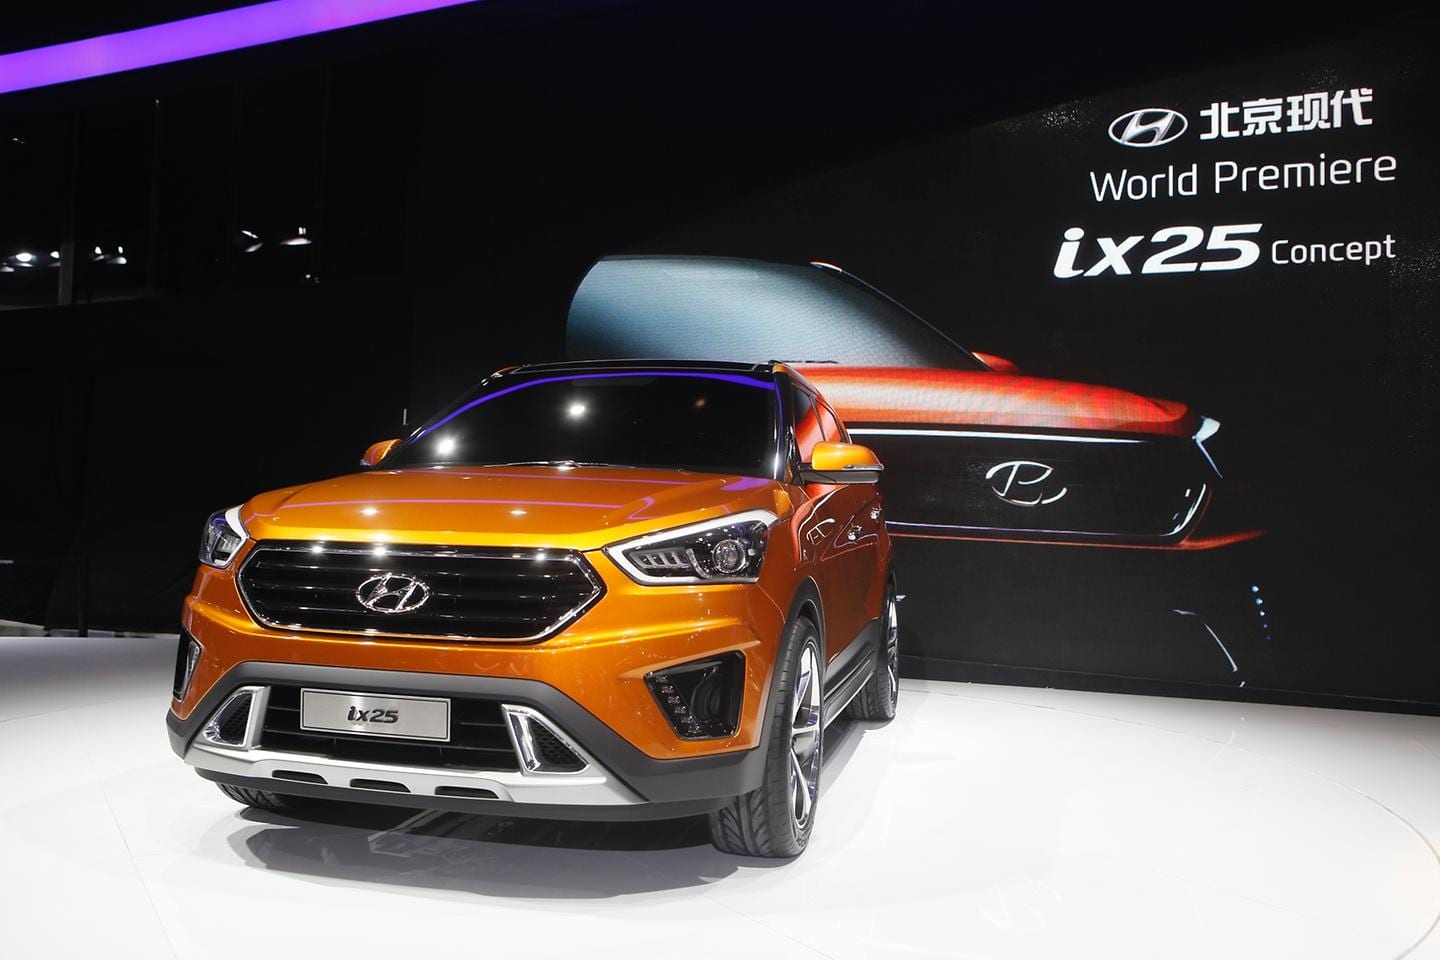 Hyundai Motor Unveils ix25 Concept Model at 2014 Beijing International Automotive Exhibition